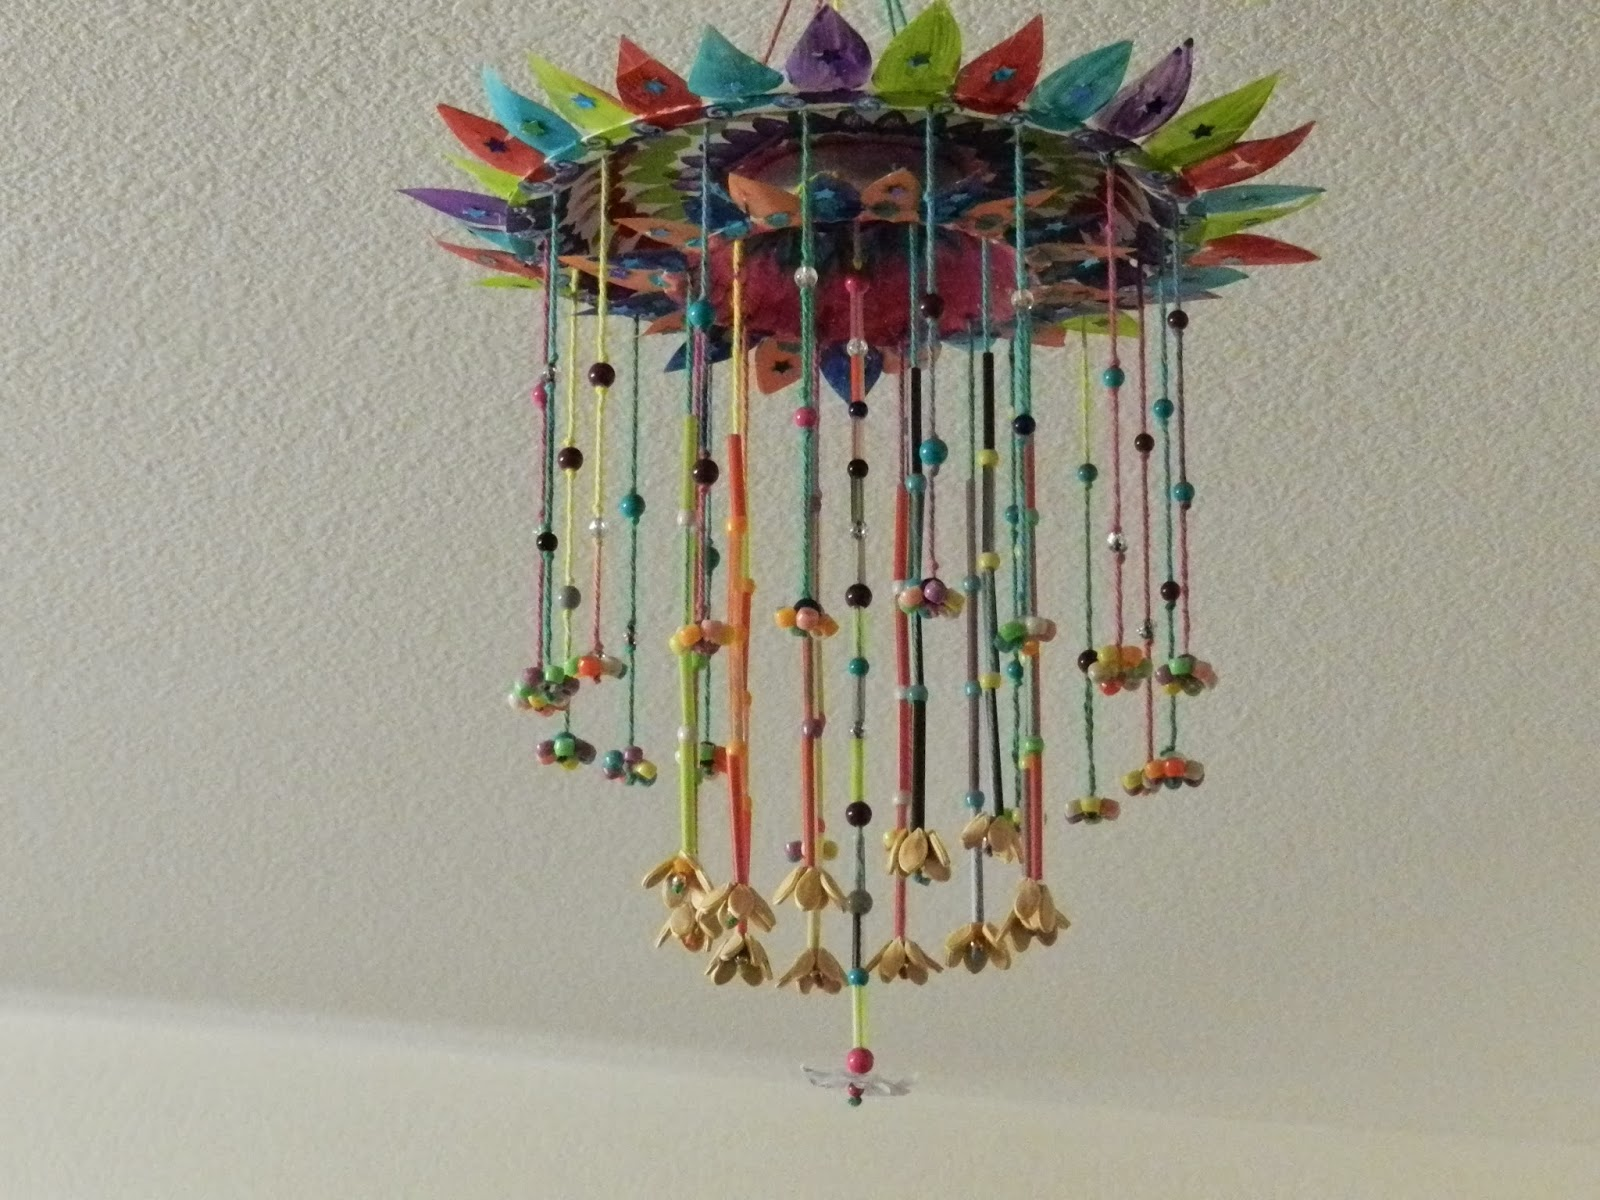 Creative diy crafts paper plate hanging craft with beads for Use of waste material in decoration